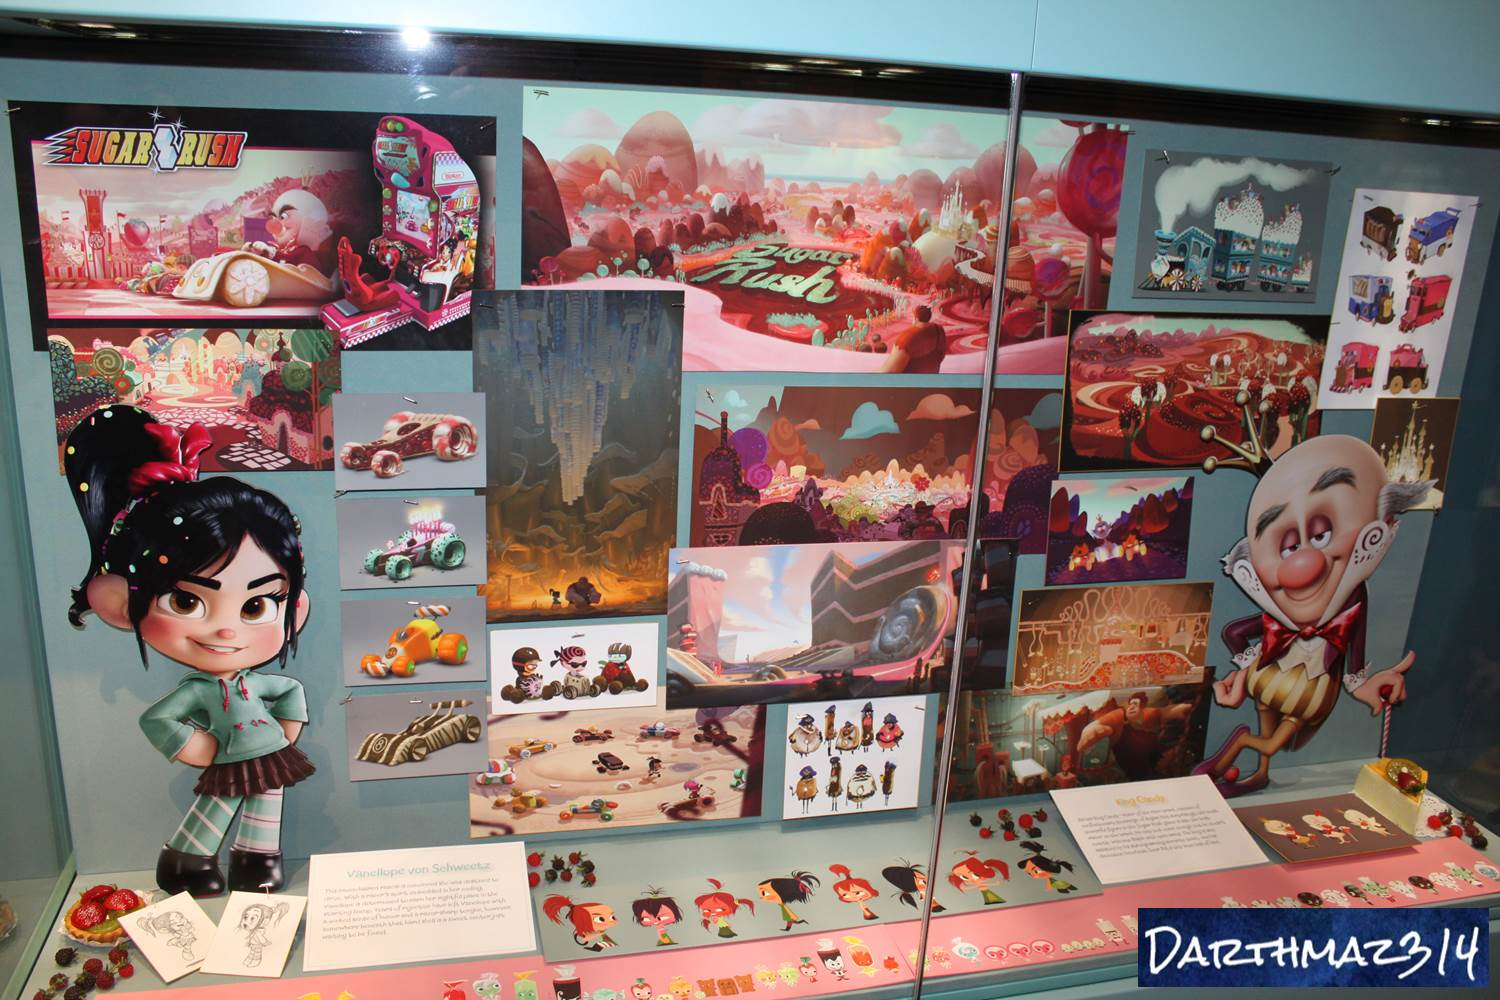 Darthmaz314 more photos of the magic of disney animation at concept art from wreck it ralph at the magic of disney animation courtesy darthmaz314 kristyandbryce Choice Image